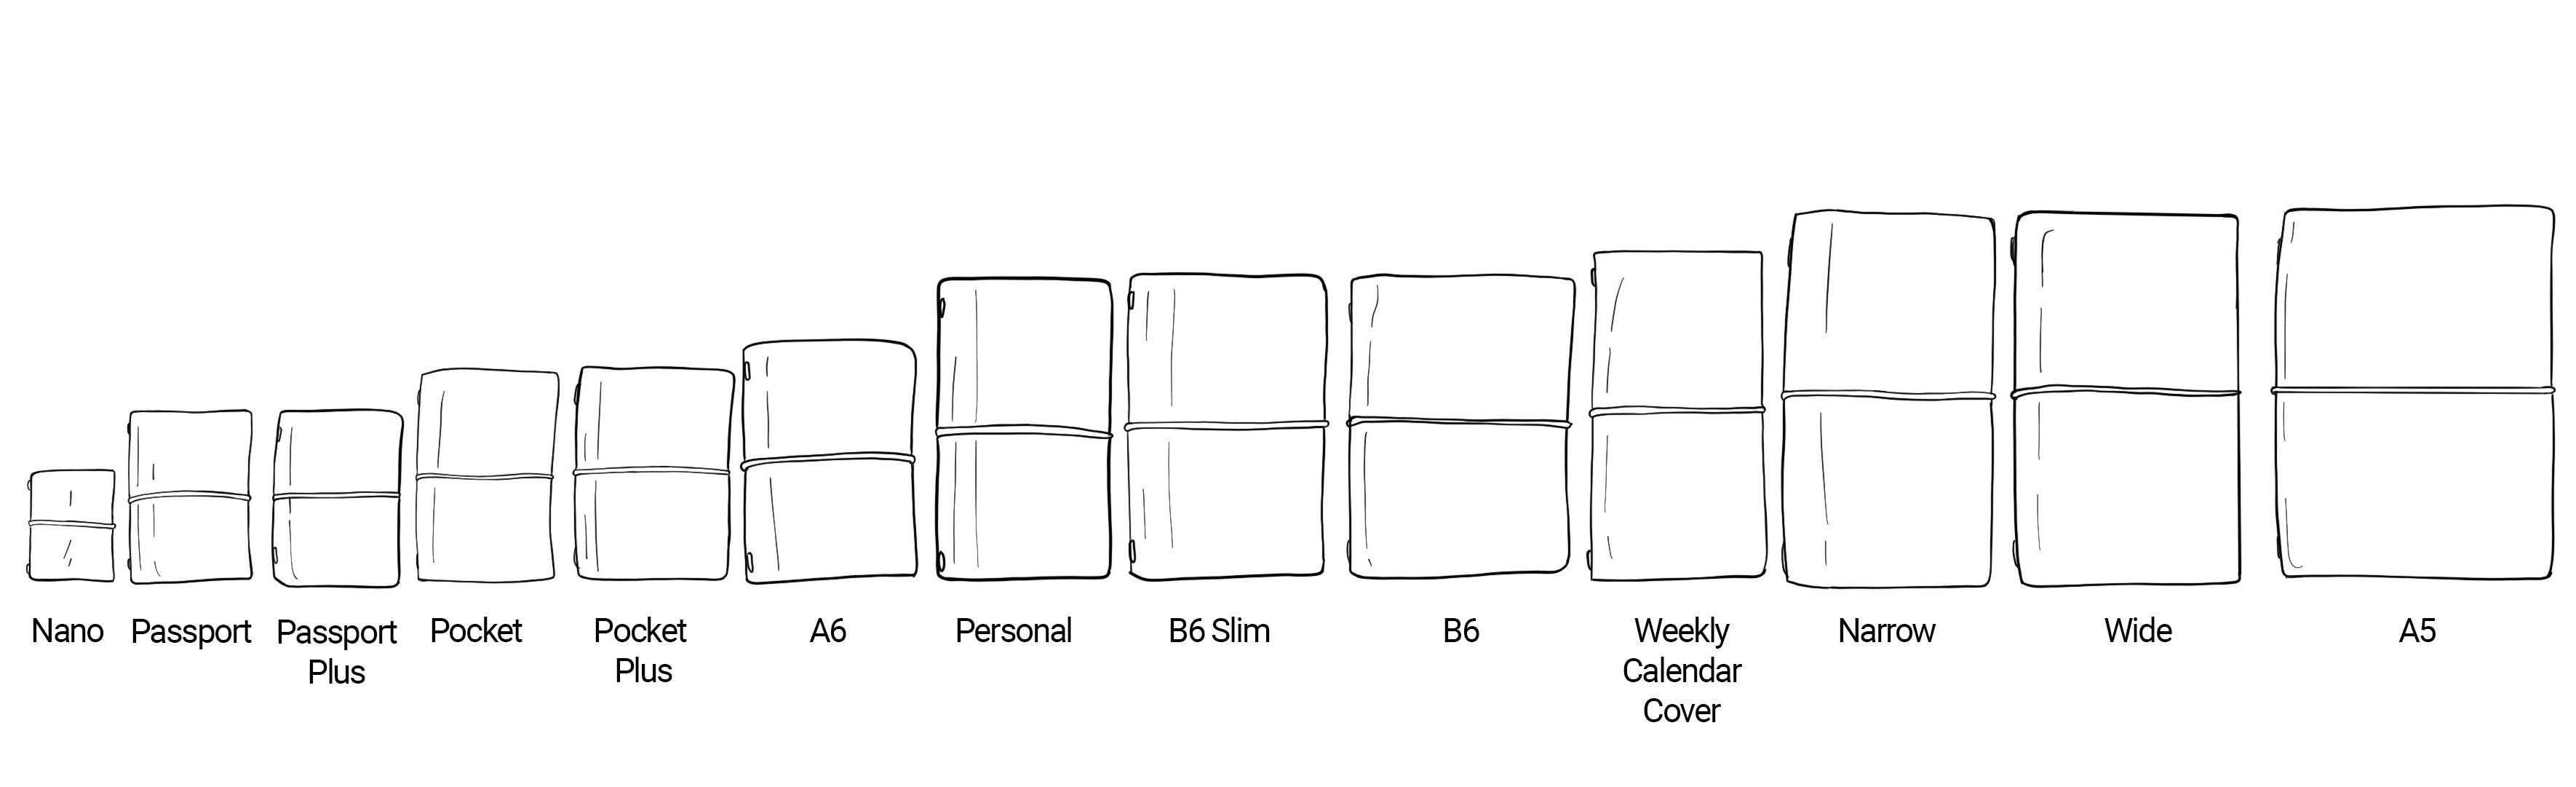 Notebook Cover Size Chart